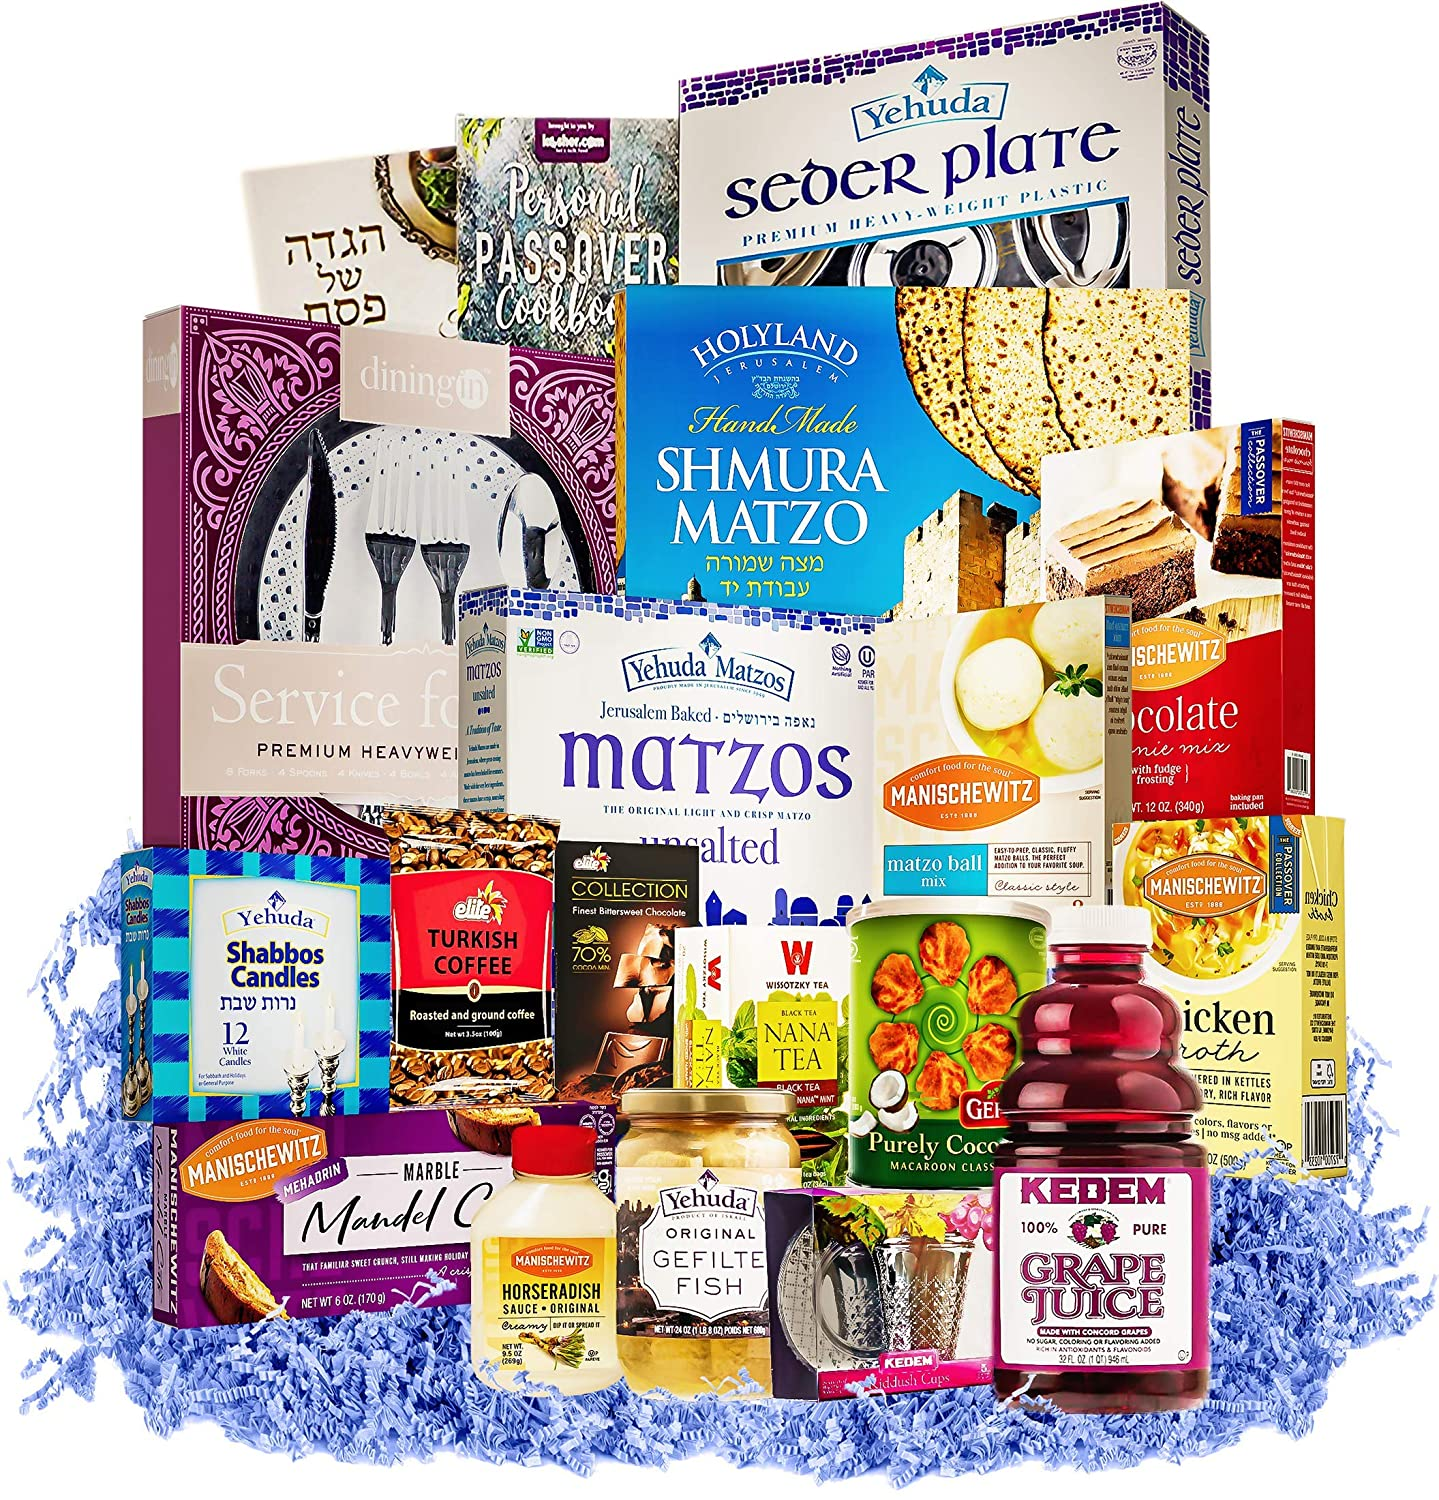 Seder In a Box | Passover Seder Essential Foods & Religious Articles | The Ultimate Passover Survival Kit | Passover Matzo, Fish, Soup, Candles Deserts Hagadda, Treats & Much More!